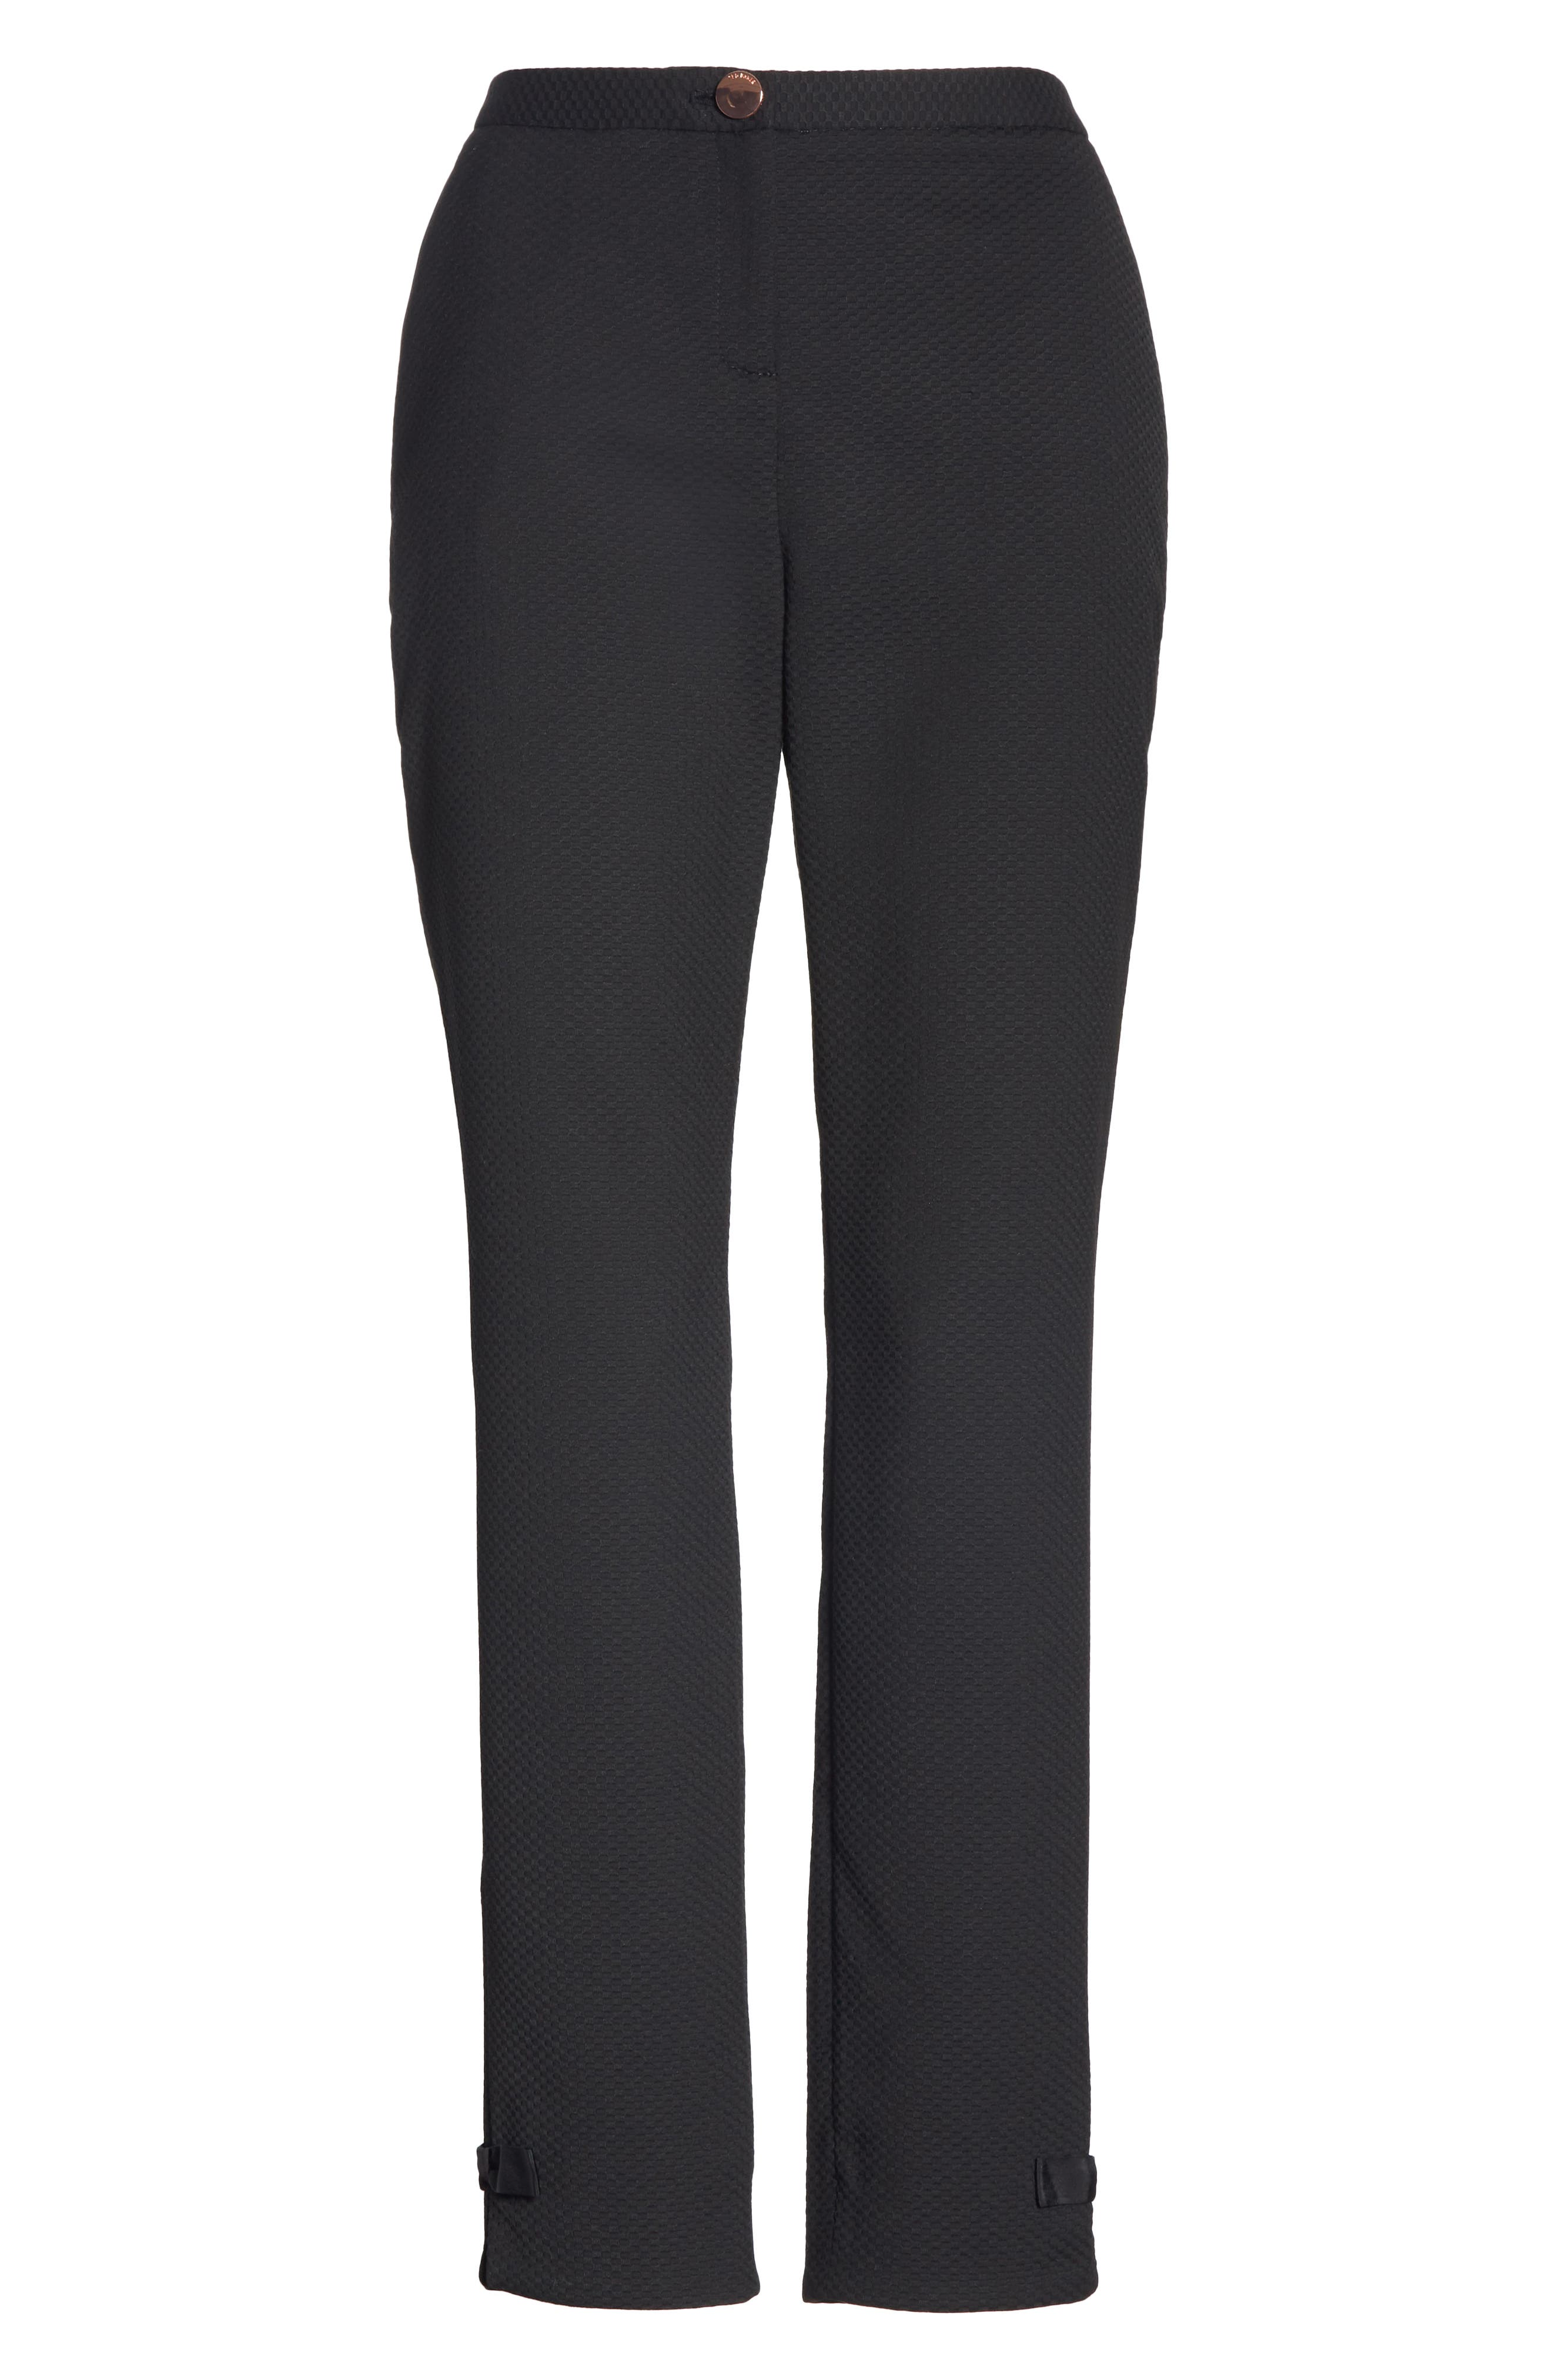 Ted Working Title Nadaet Bow Detail Textured Trousers,                             Alternate thumbnail 6, color,                             BLACK